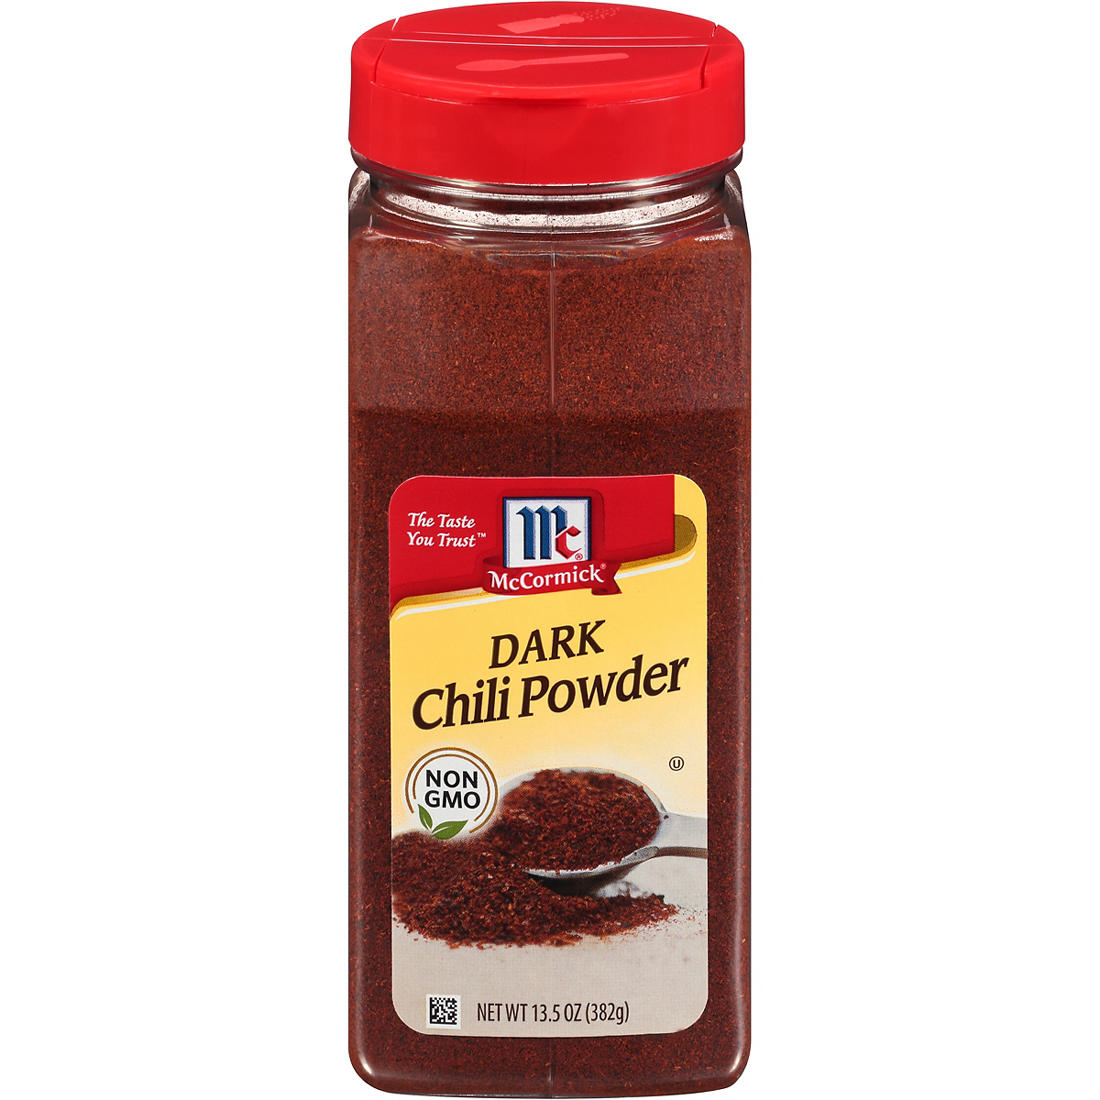 McCormick Dark Chili Powder, 13.5 oz. - BJs WholeSale Club